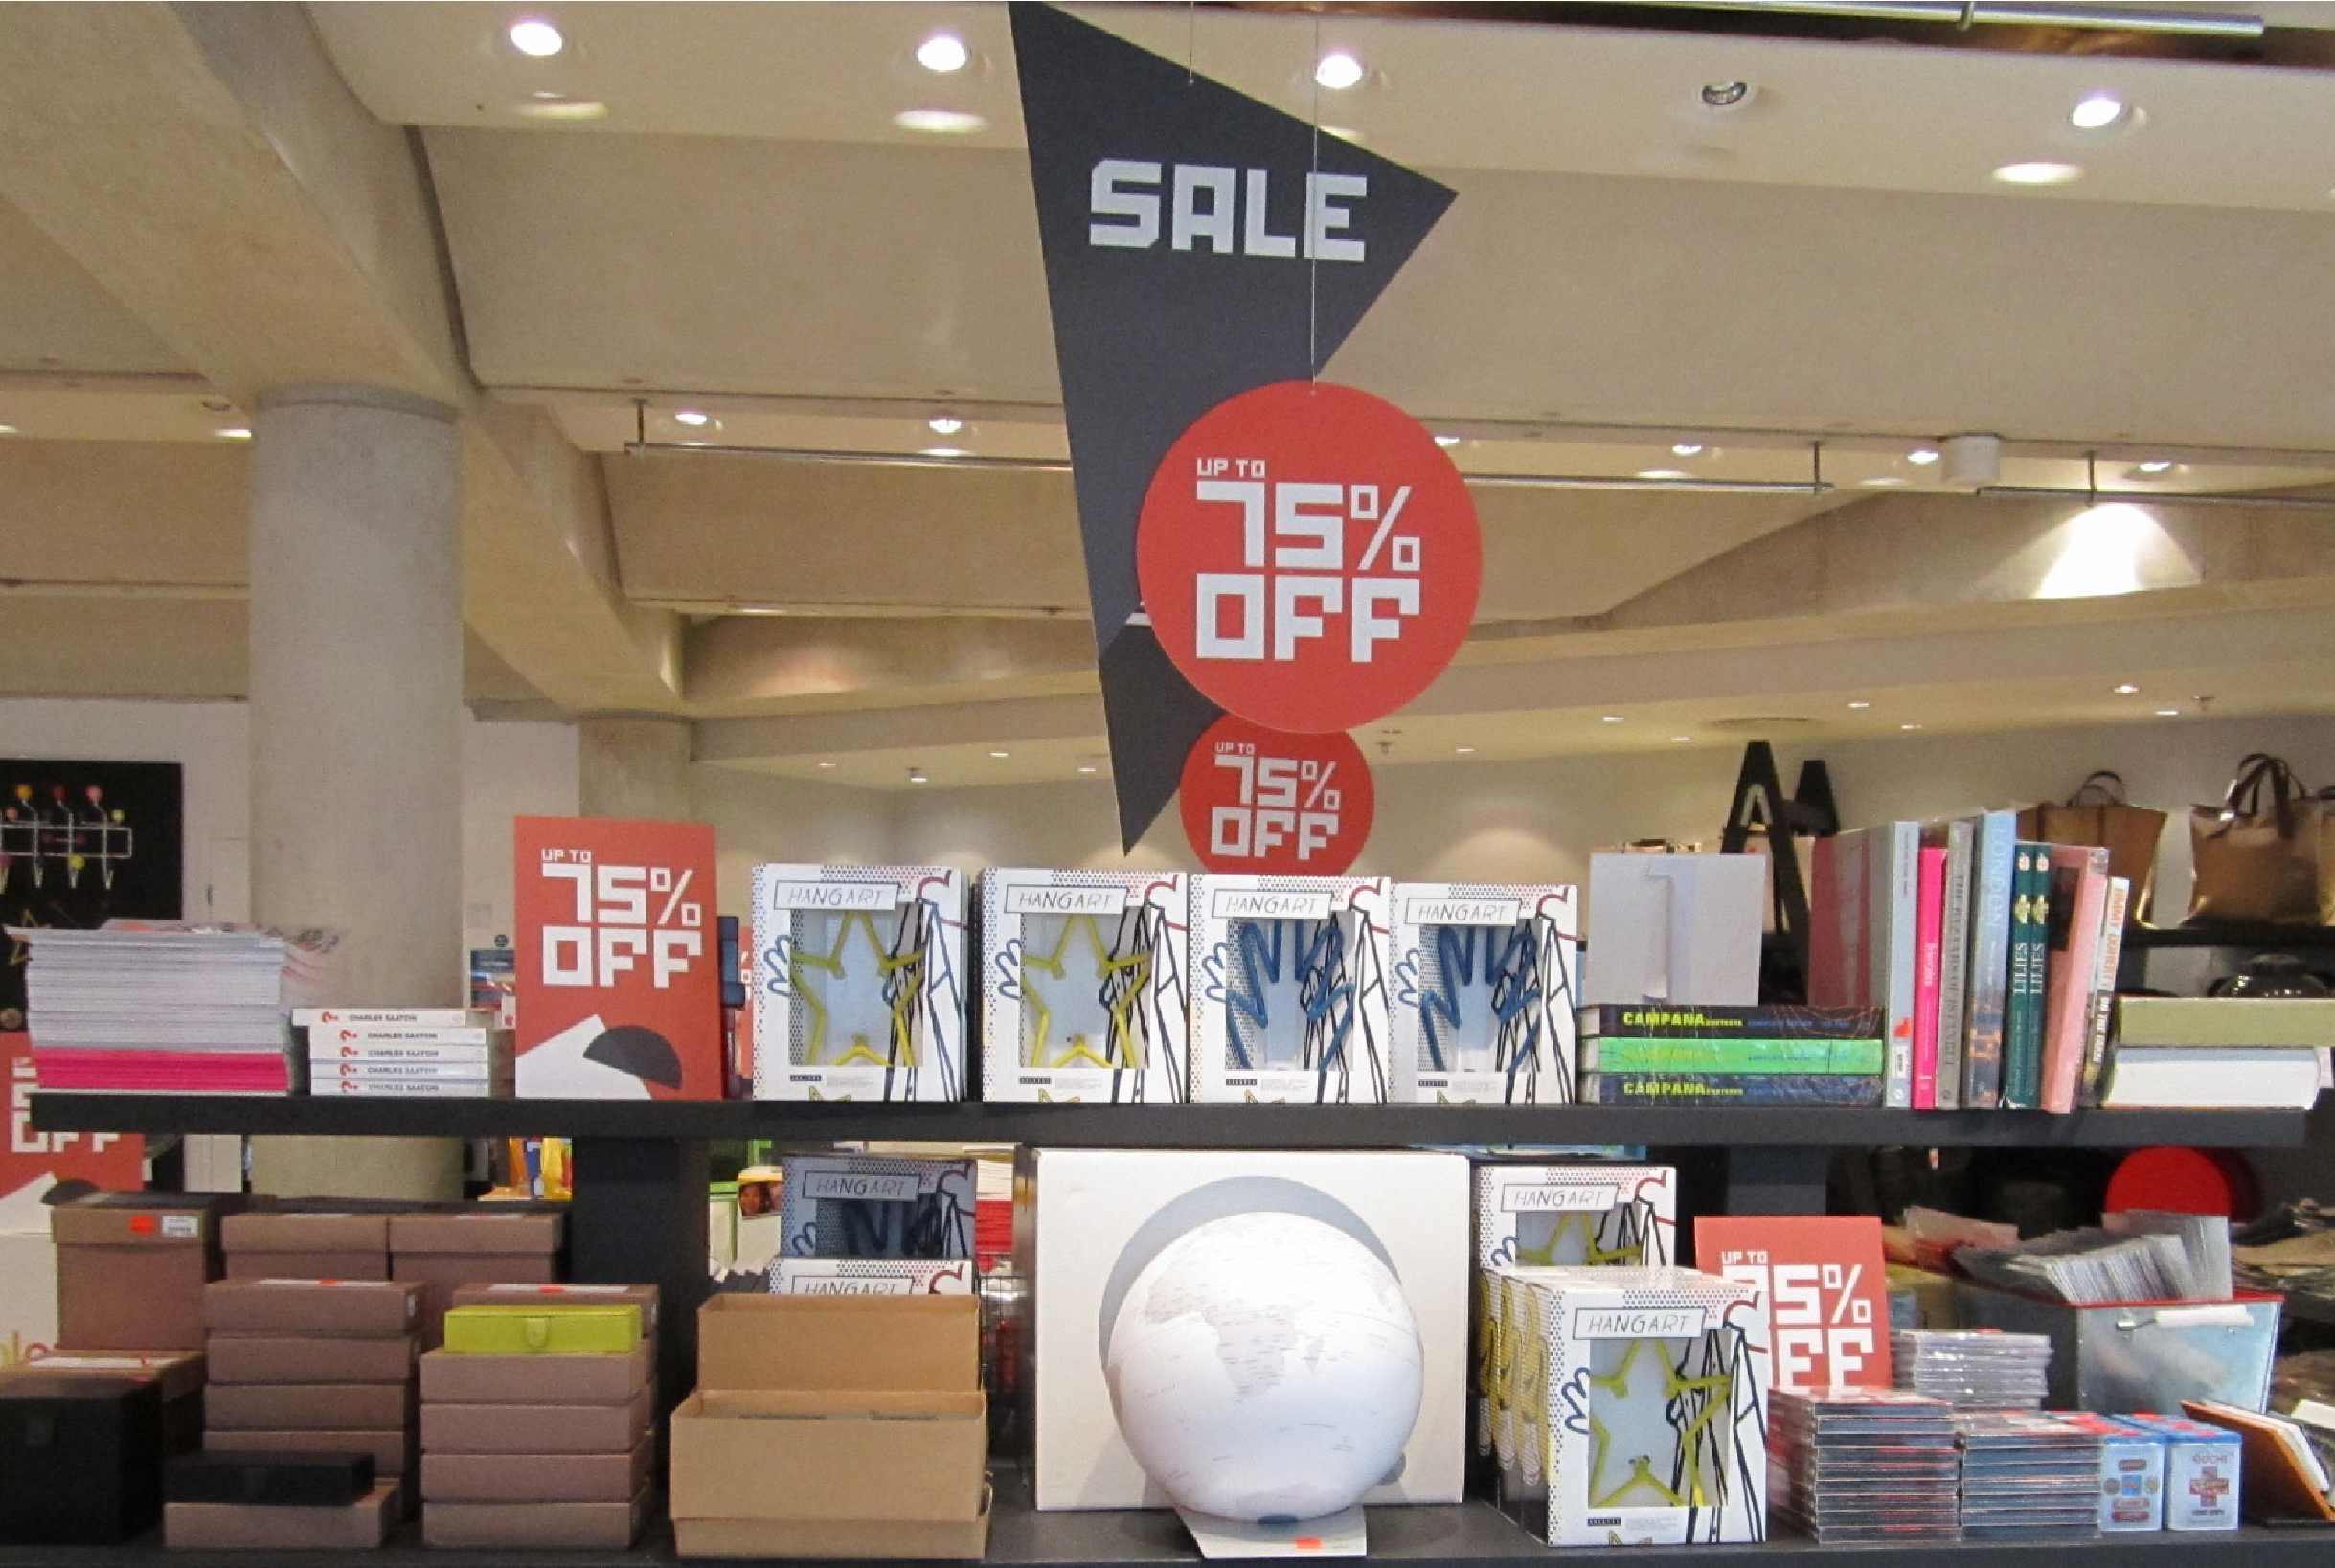 Sale signage for The Conran Shop